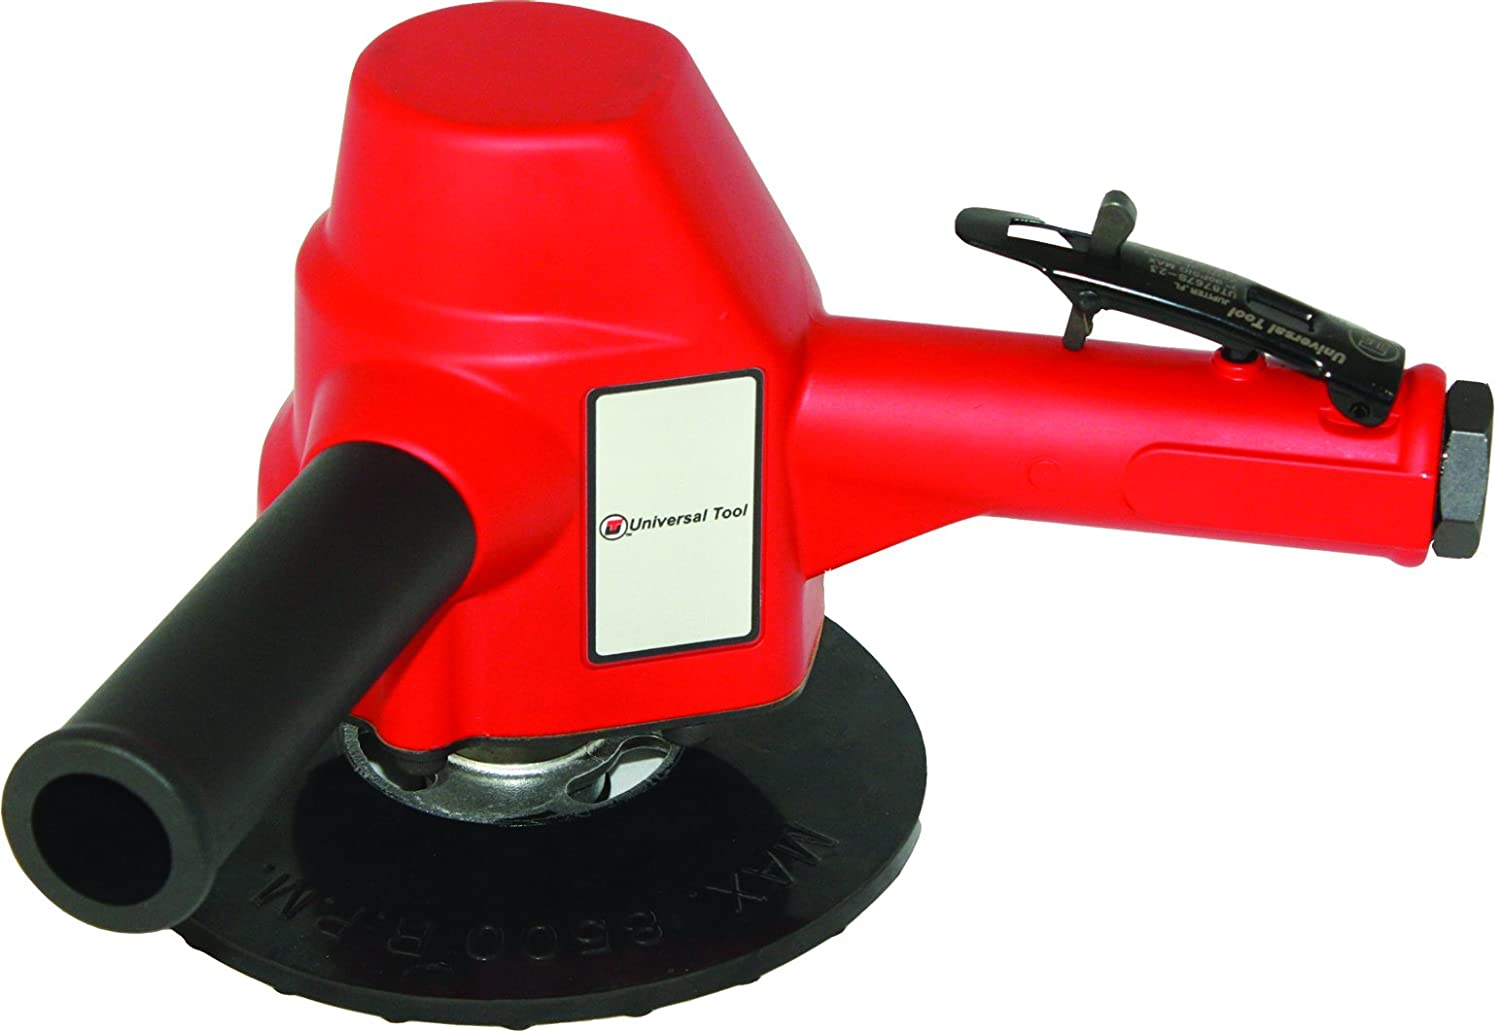 Universal Tool UT8767-23 Vertical Grinder, 7 by Universal Tool B003A316GG